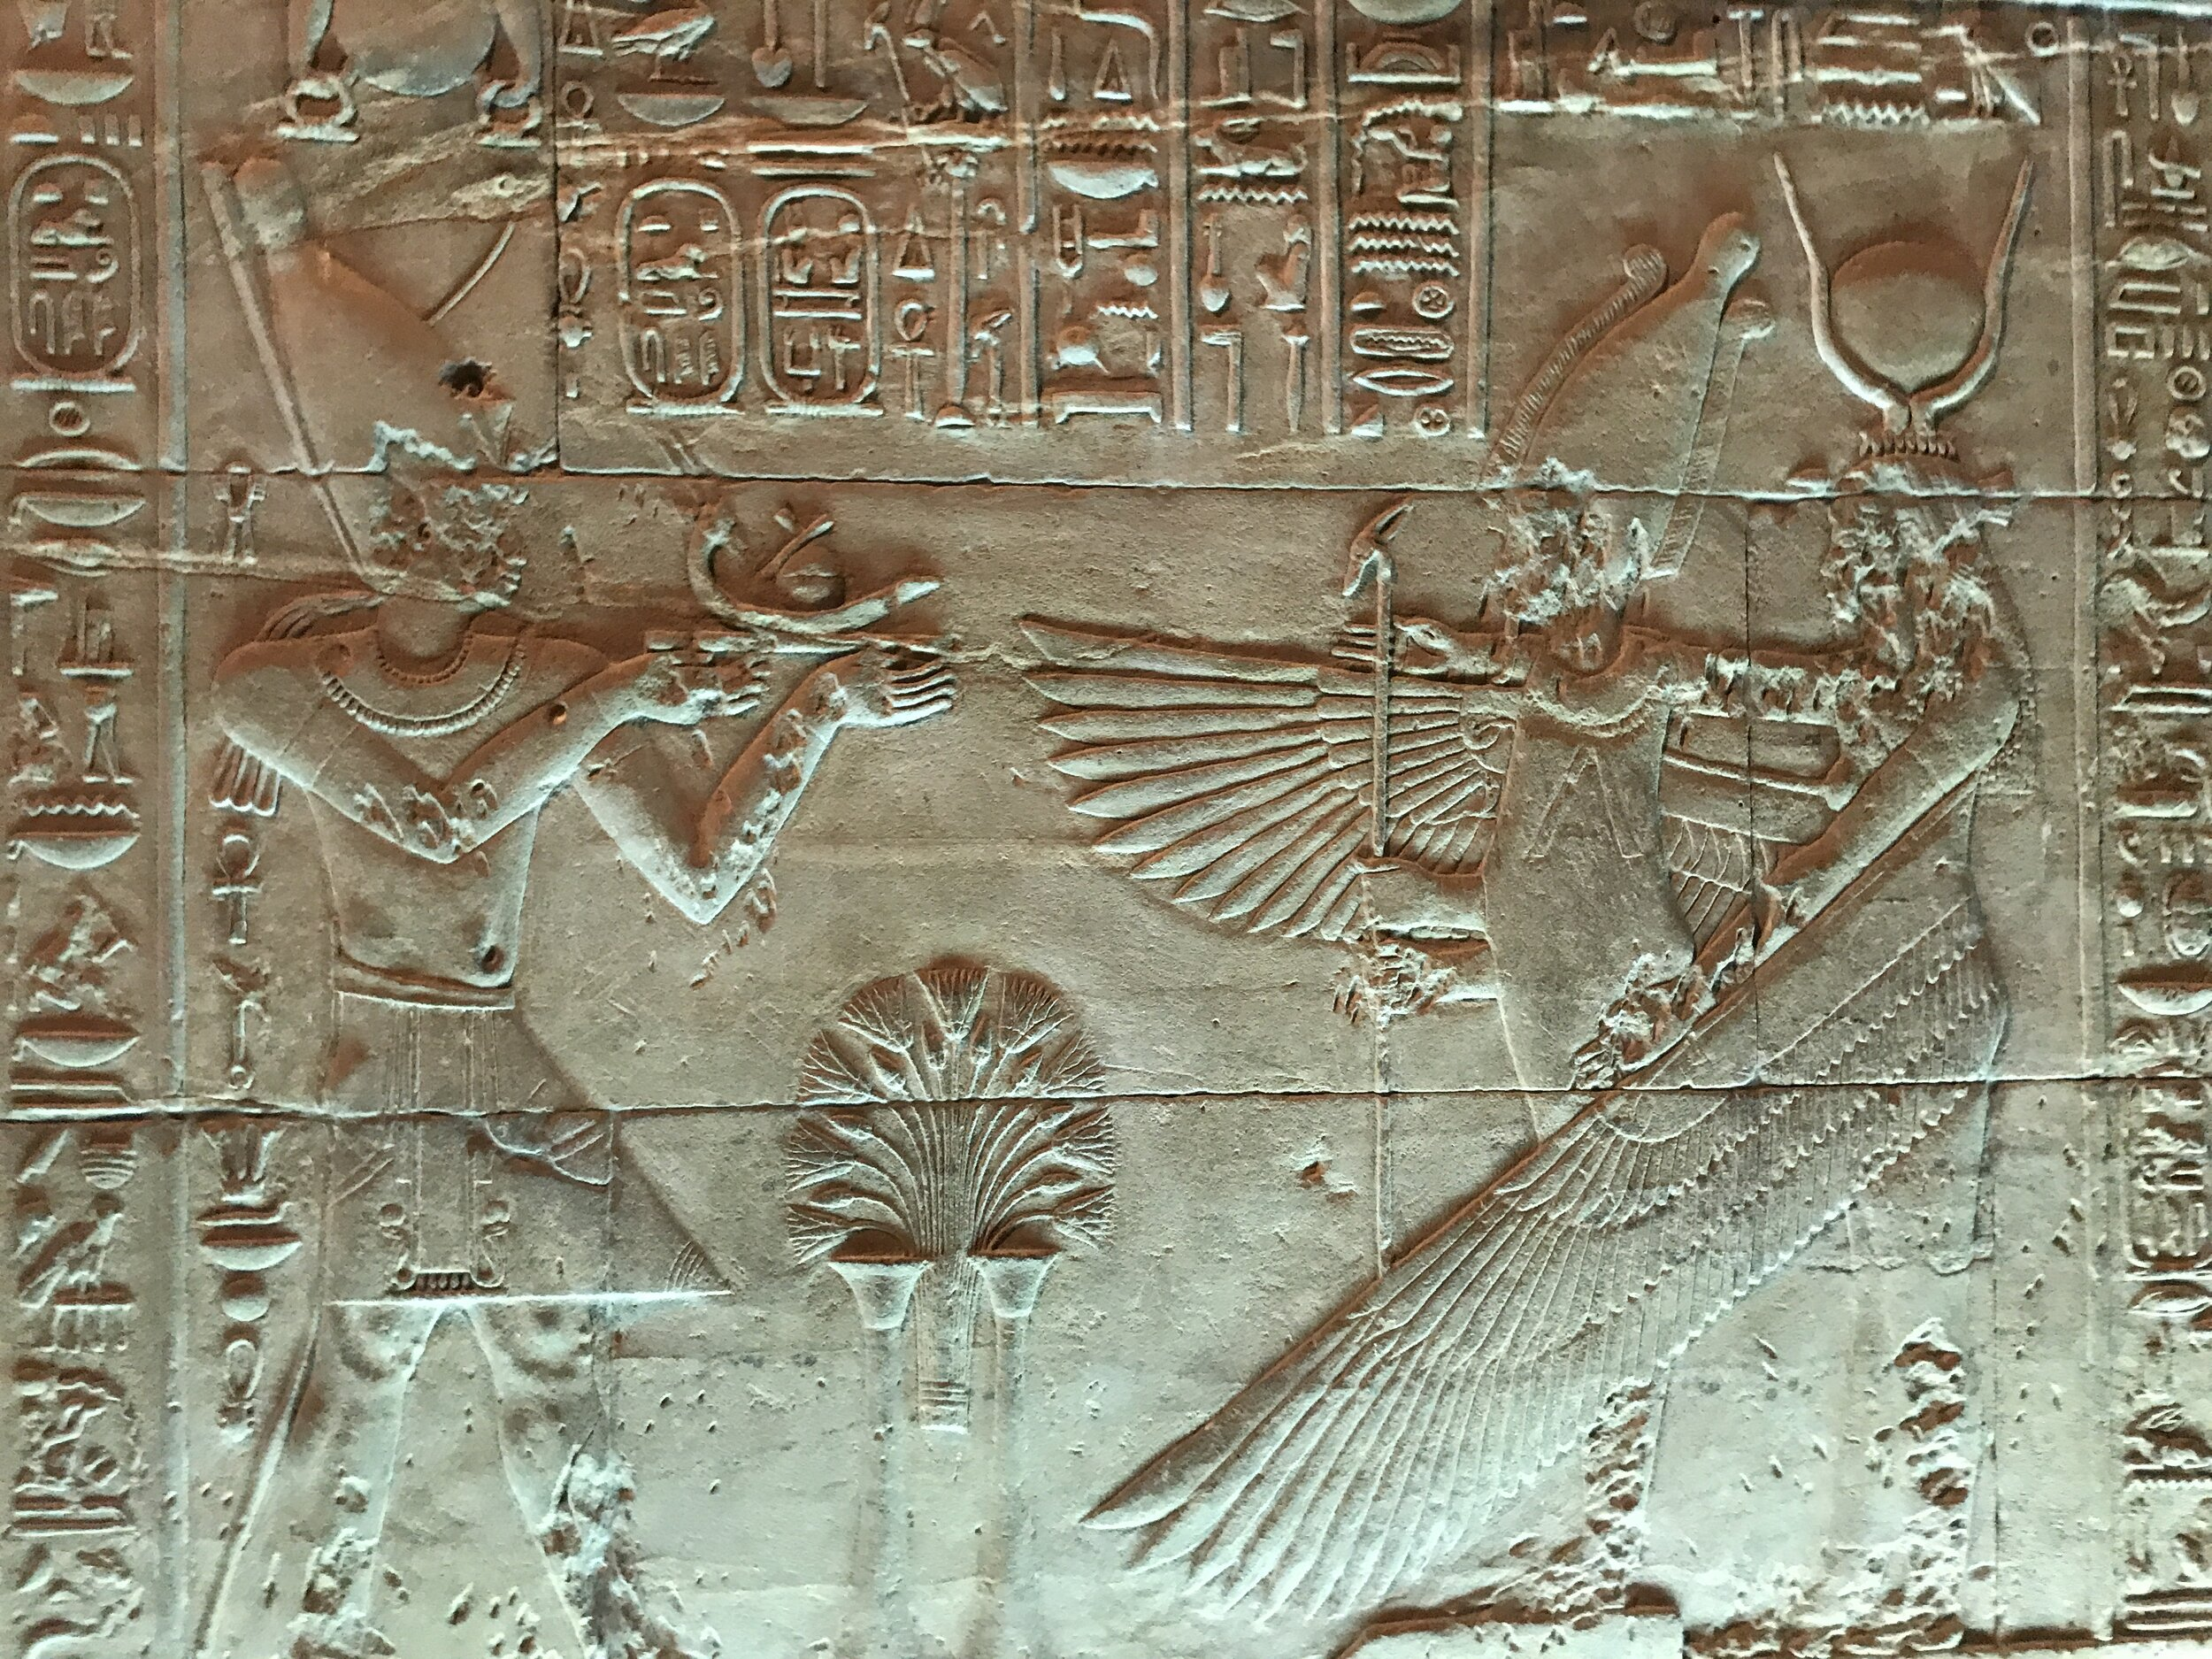 One of the Ptolemaic pharaohs presents an offering to the goddess Isis, with her massive wings